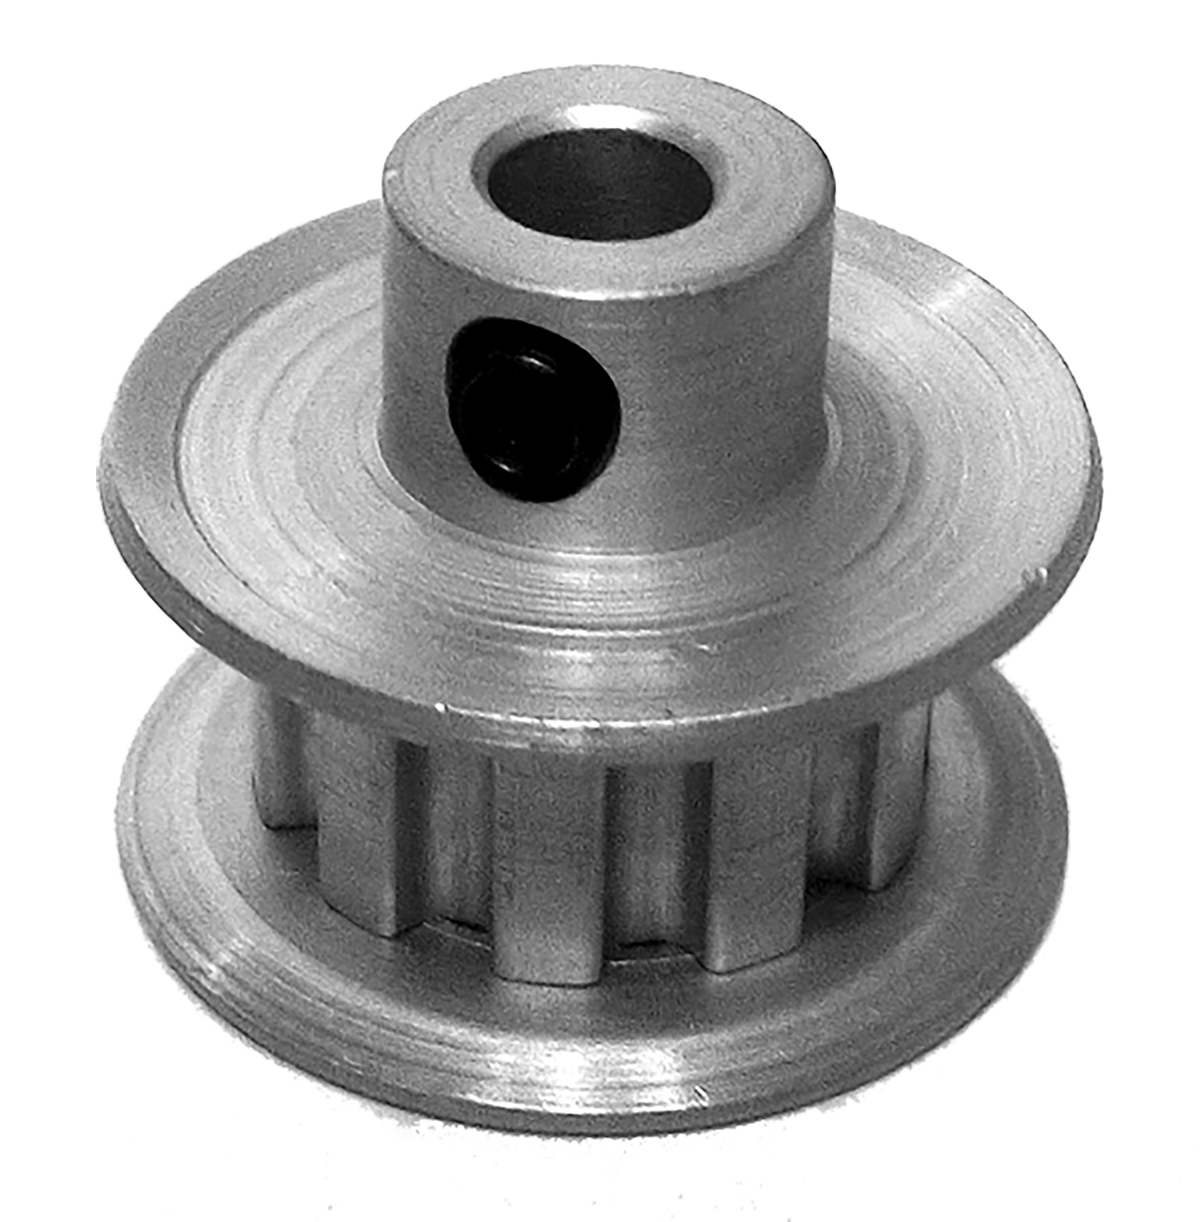 12XL025-6FA4 - Aluminum Imperial Pitch Pulleys